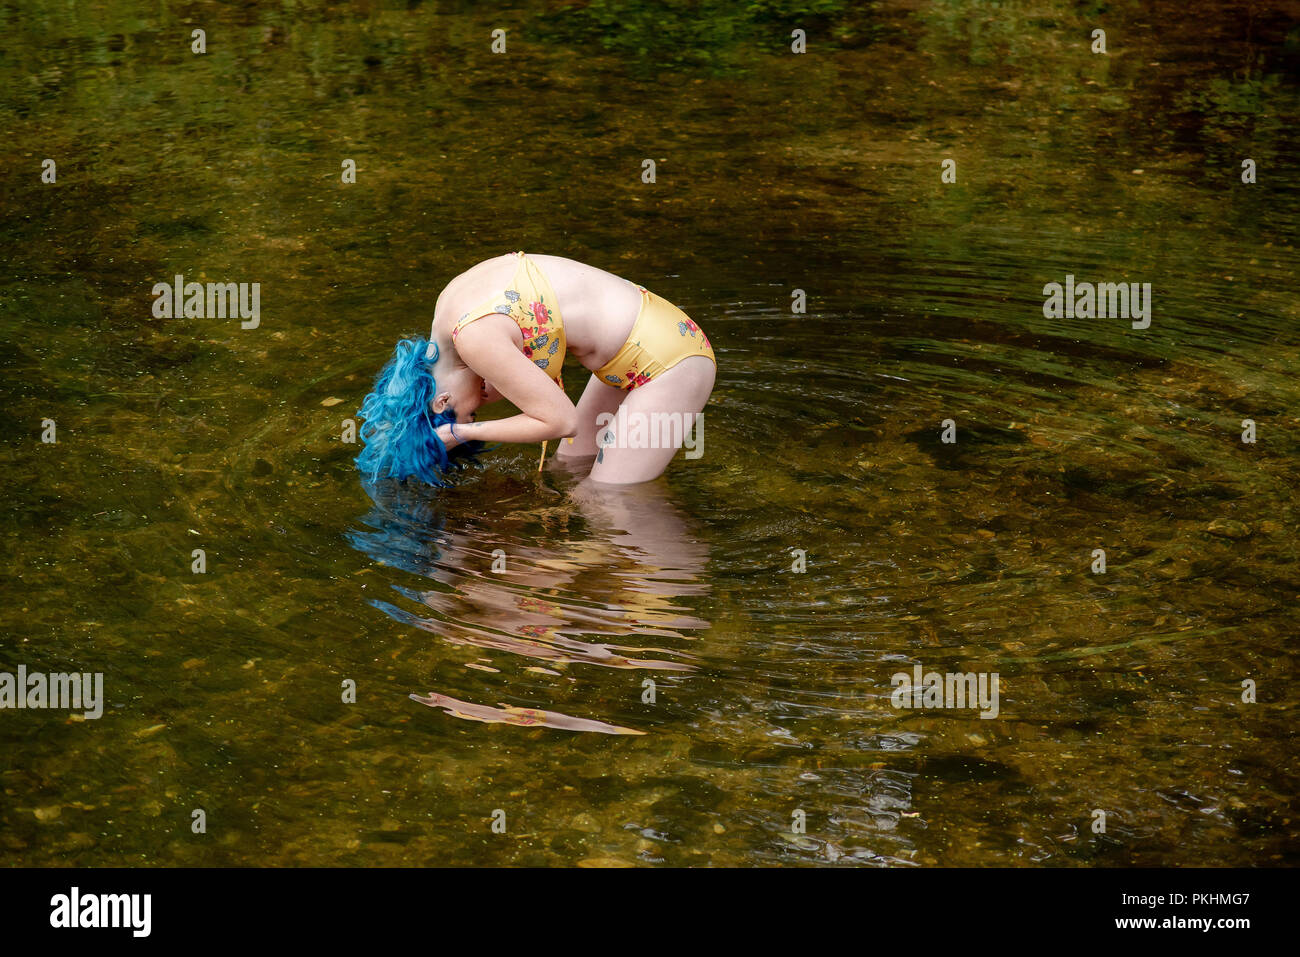 A blue haired woman standing in a river bends over to wet her hair - Stock Image